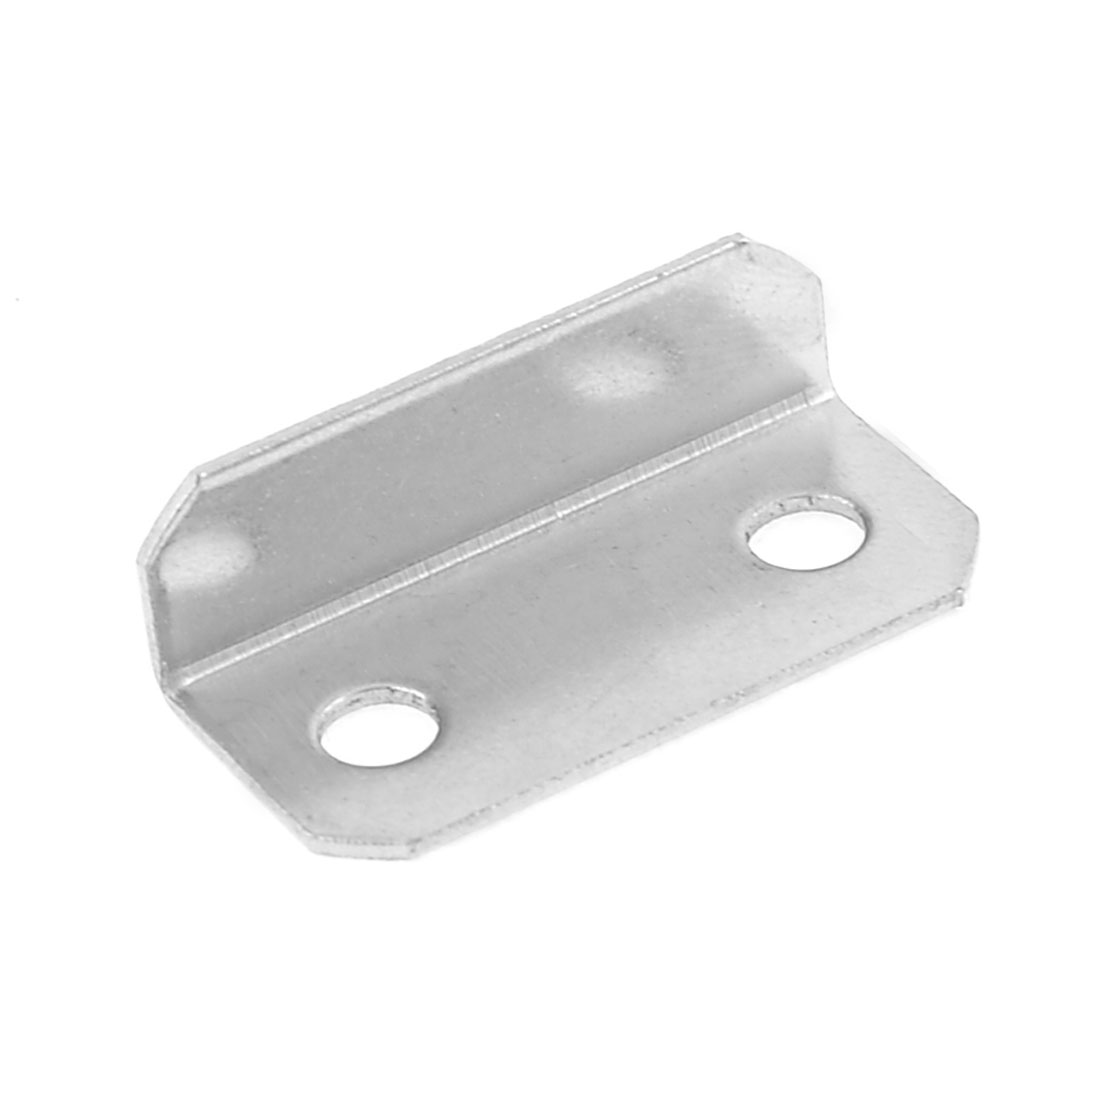 "Cabinet Cupboard Drawer Lock Strike Plate Replacements 1.1"" Long"